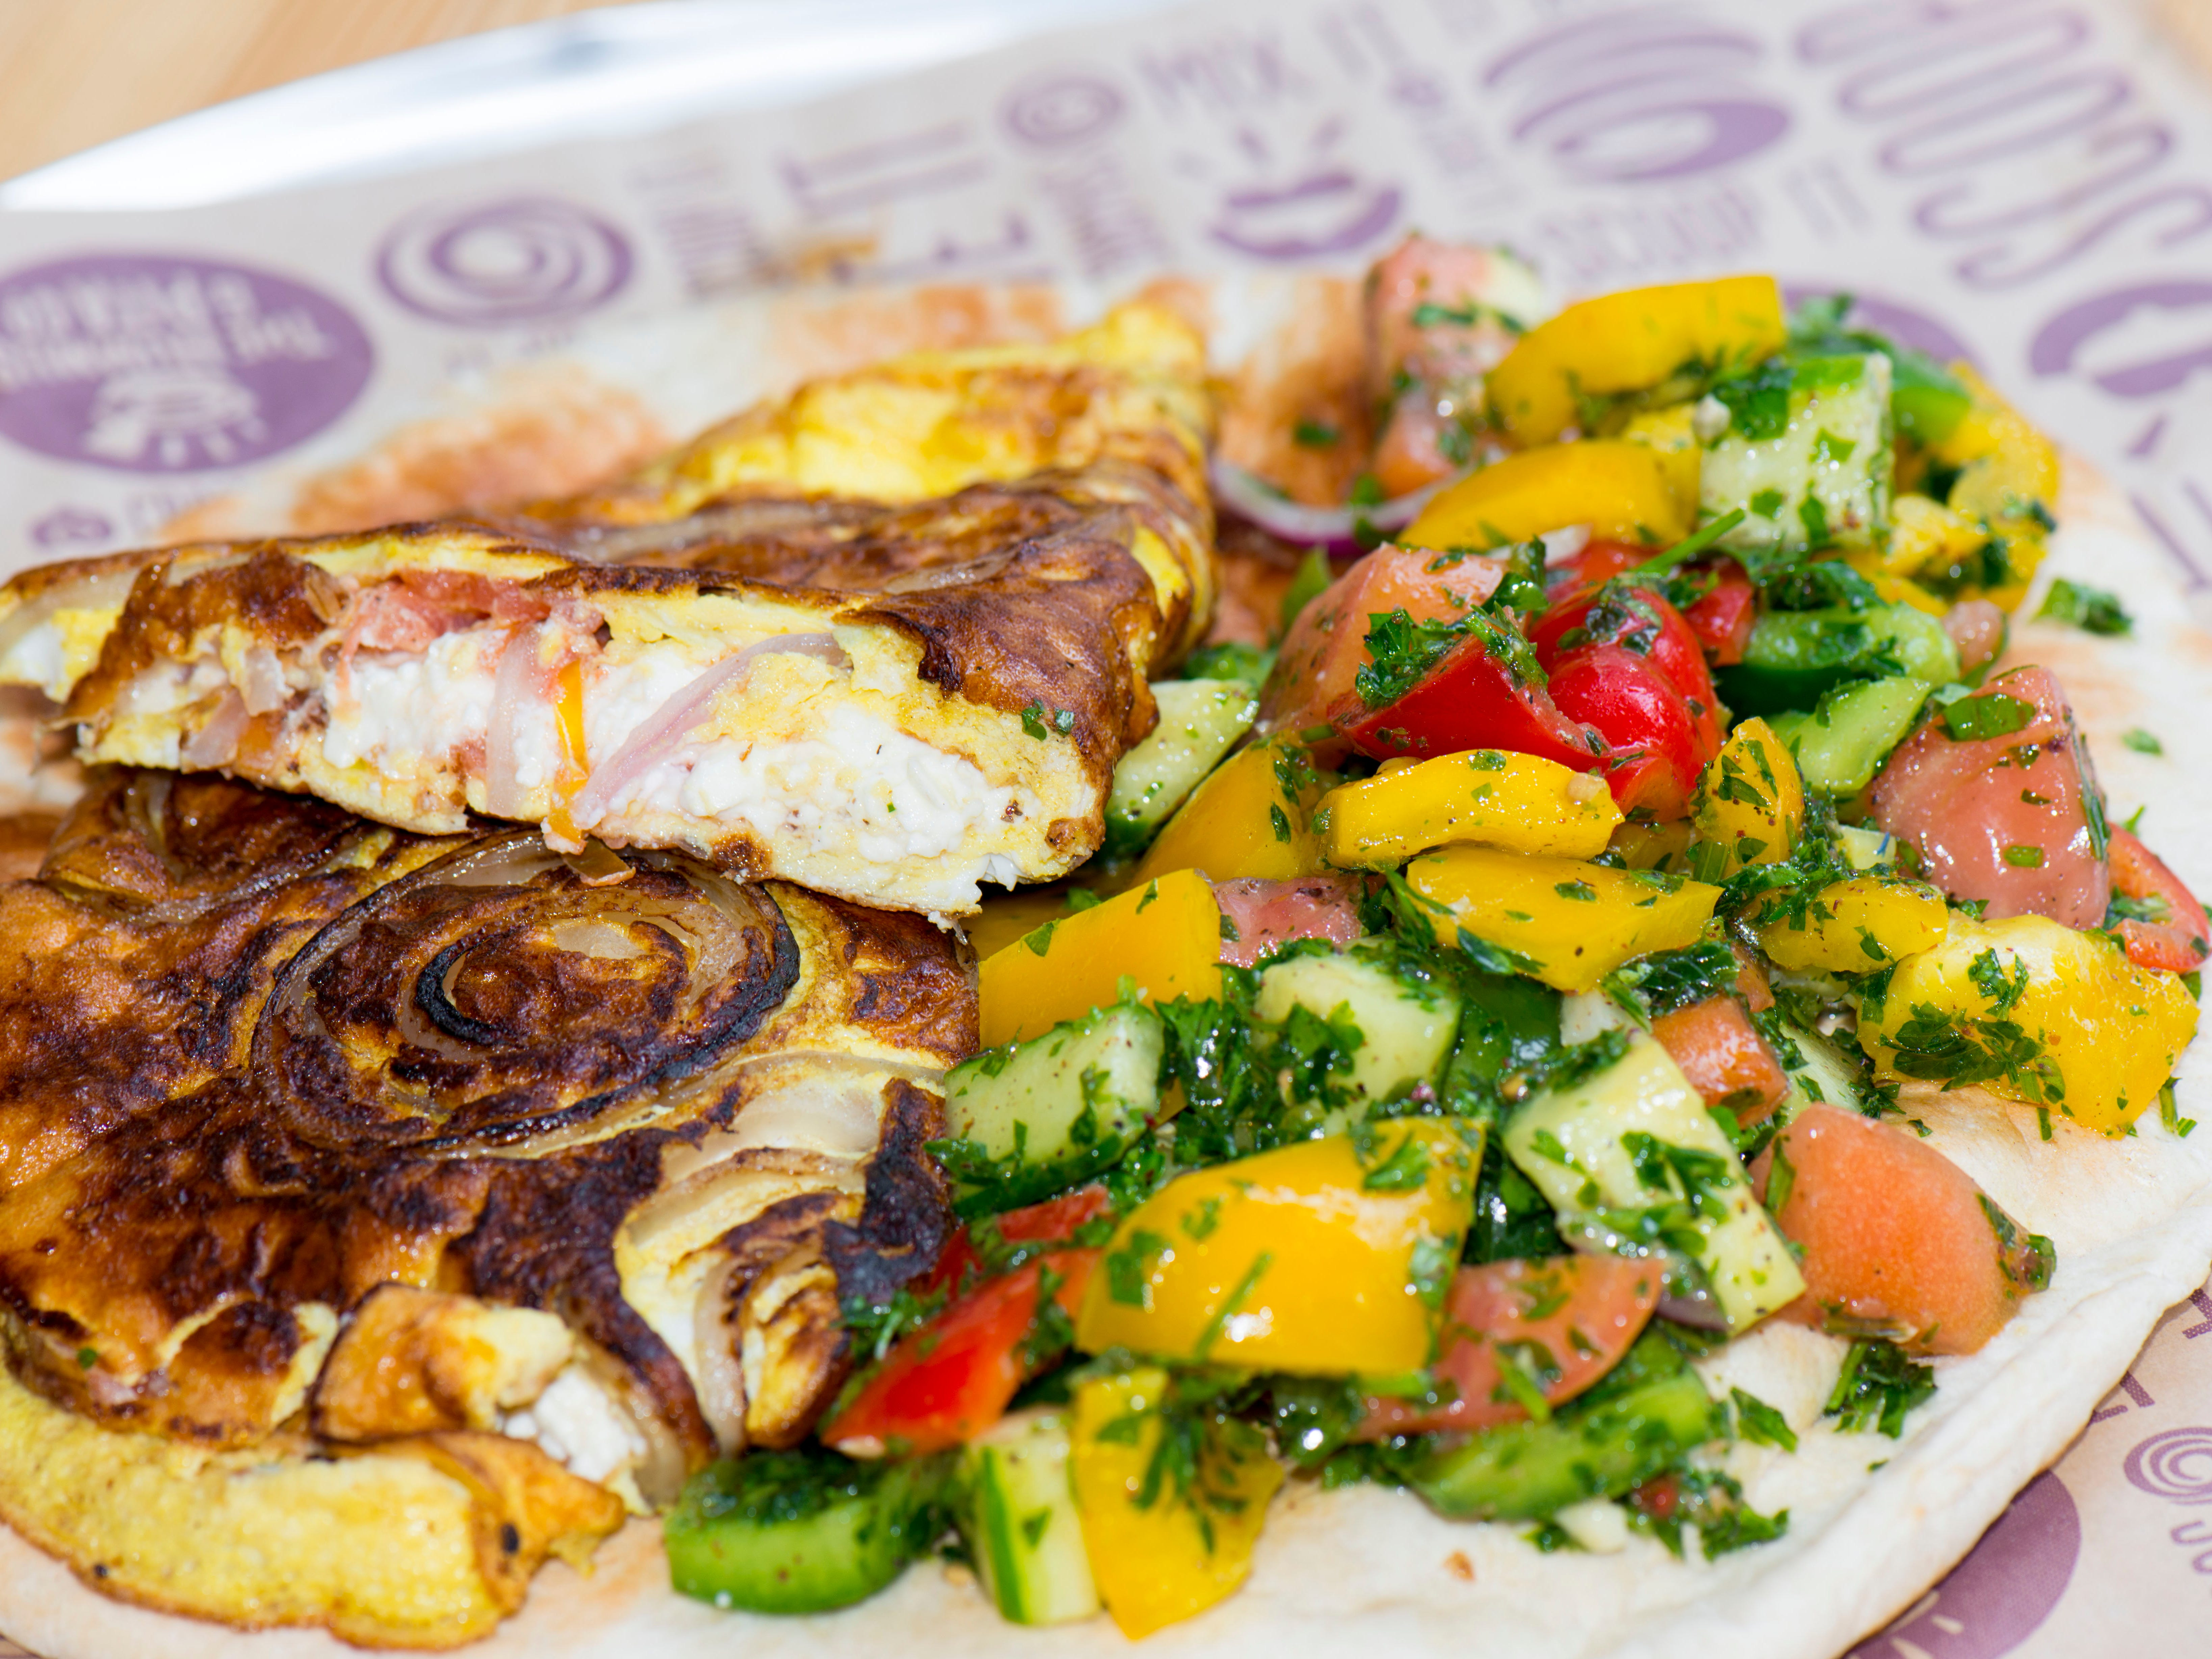 A vegetable omelet from The Hummus & Pita Co., opening in November at Bell Works in Holmdel.